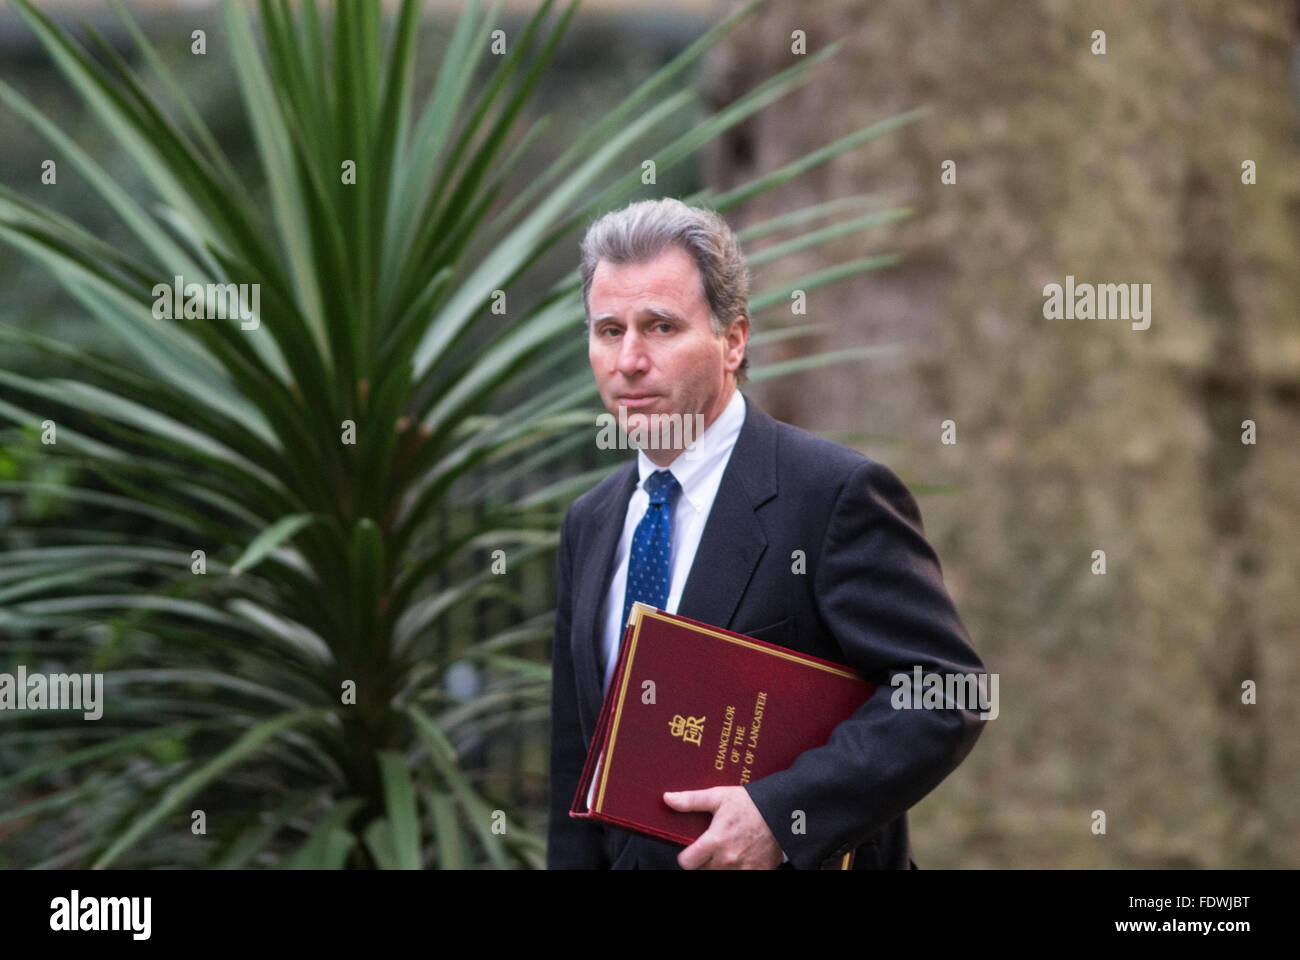 Oliver Letwin,Minister of State for Government Policy,arrives at Number 10 Downing Street for a Cabinet meeting - Stock Image